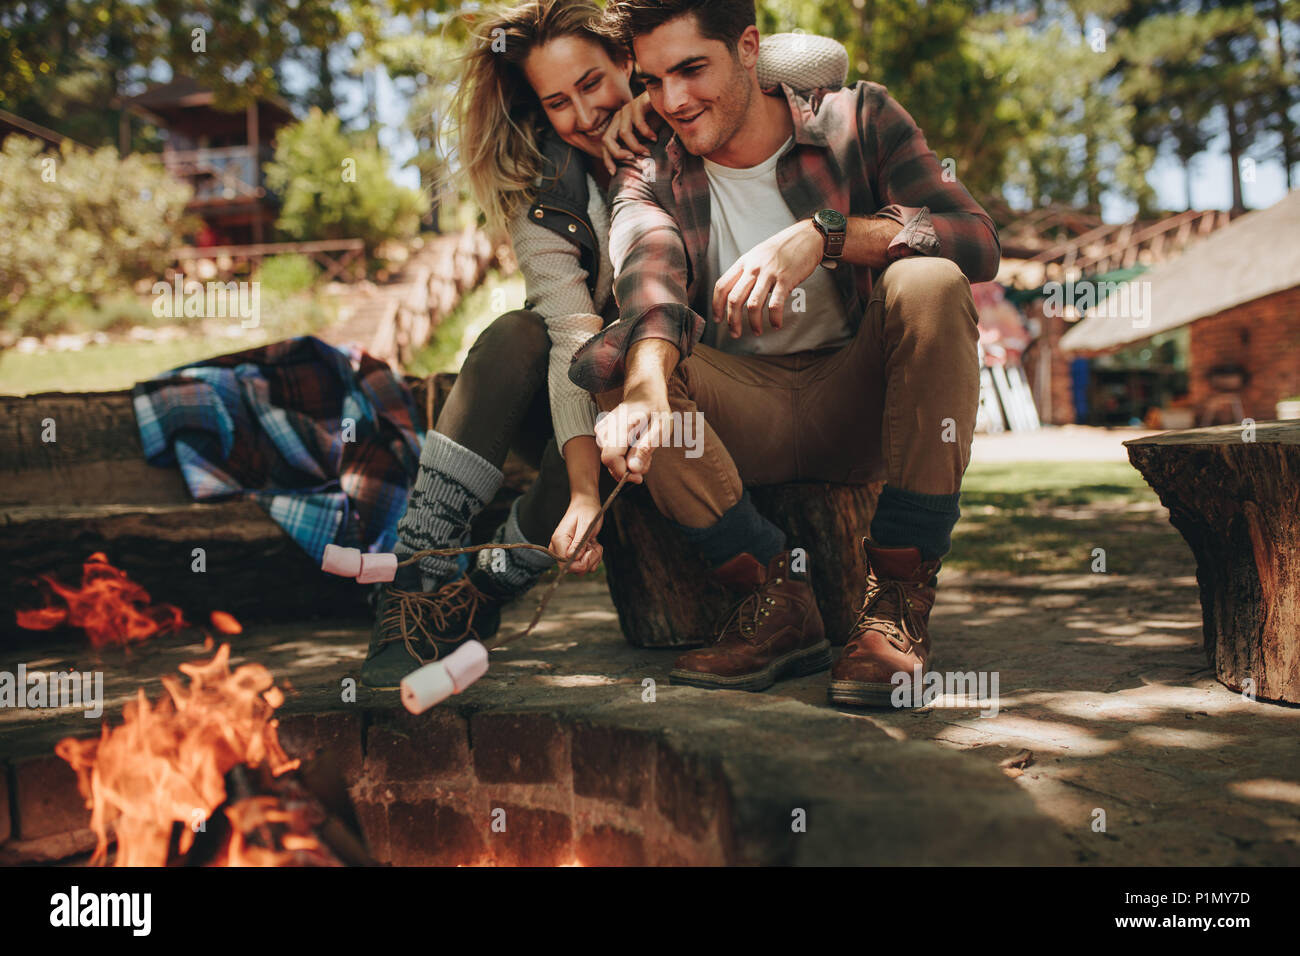 Couple roasting marshmallows on bonfire at campsite. Man and woman having roasted sweets on camping. - Stock Image